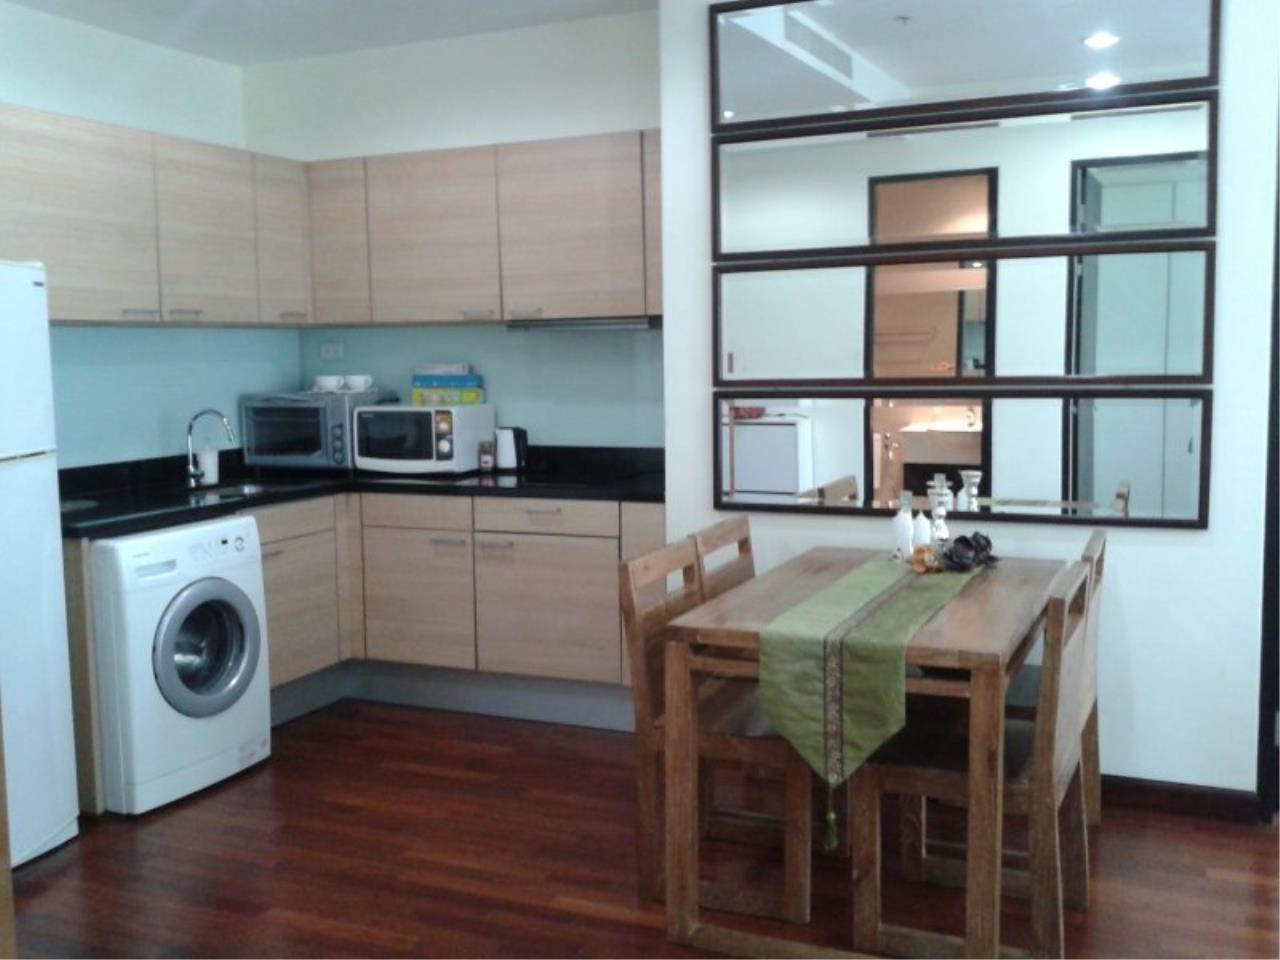 Piri Property Agency's Comfort 2 Bedrooms in The Address Chidlom Condo for rent 5